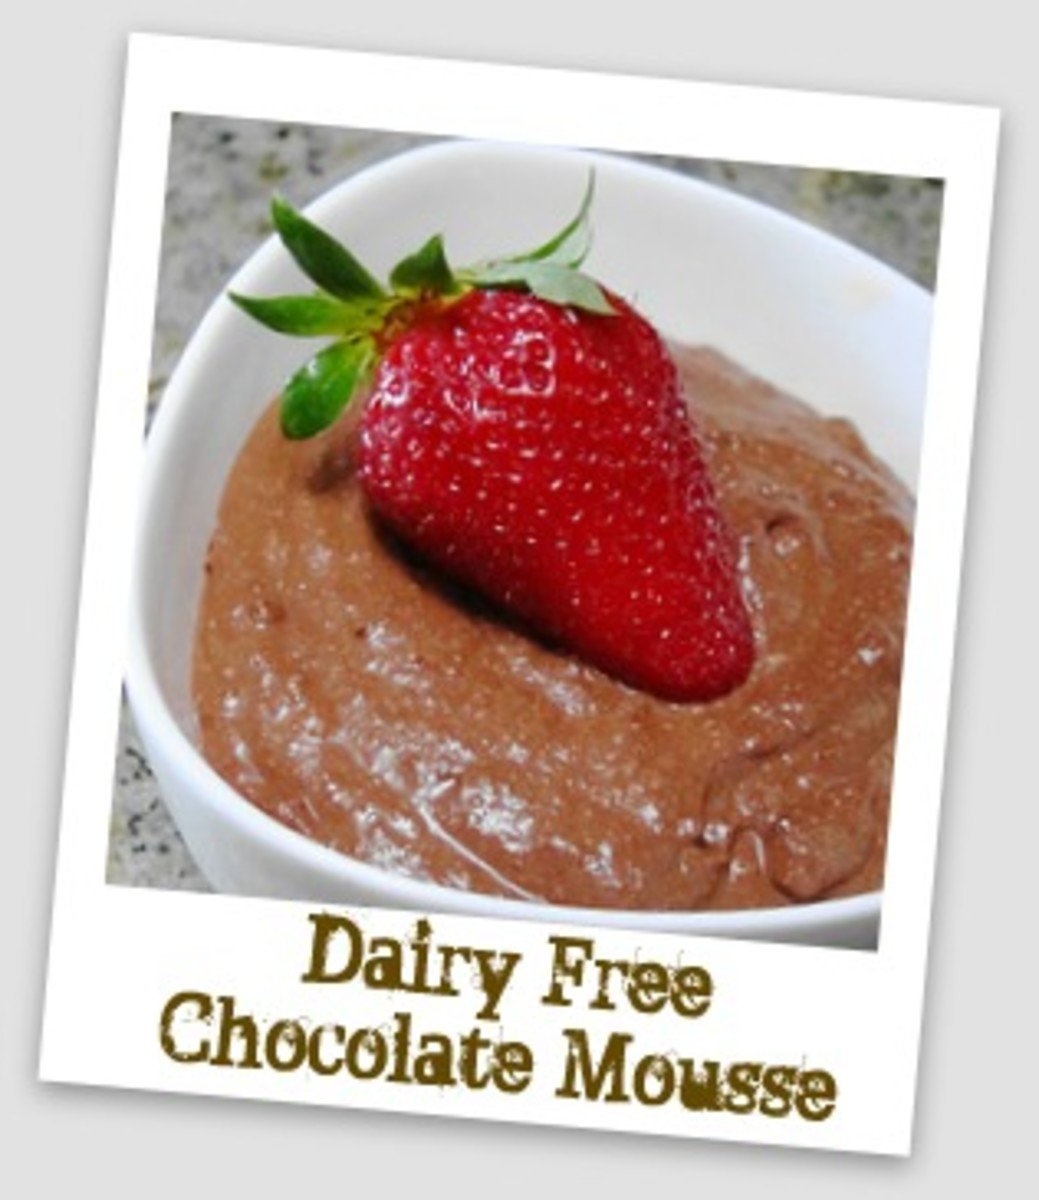 Lactose Dairy Free Chocolate Mousse Recipe